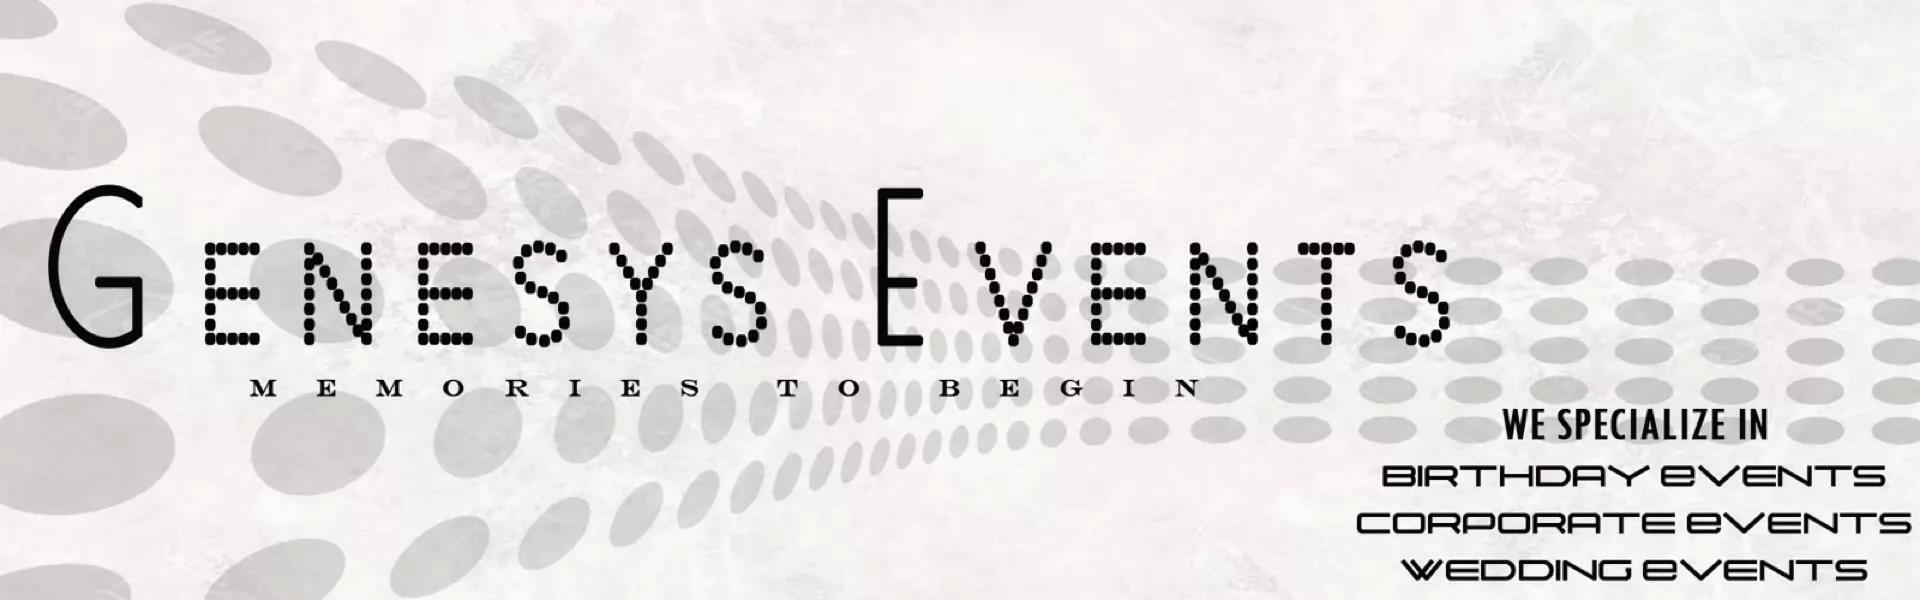 Genesys Events